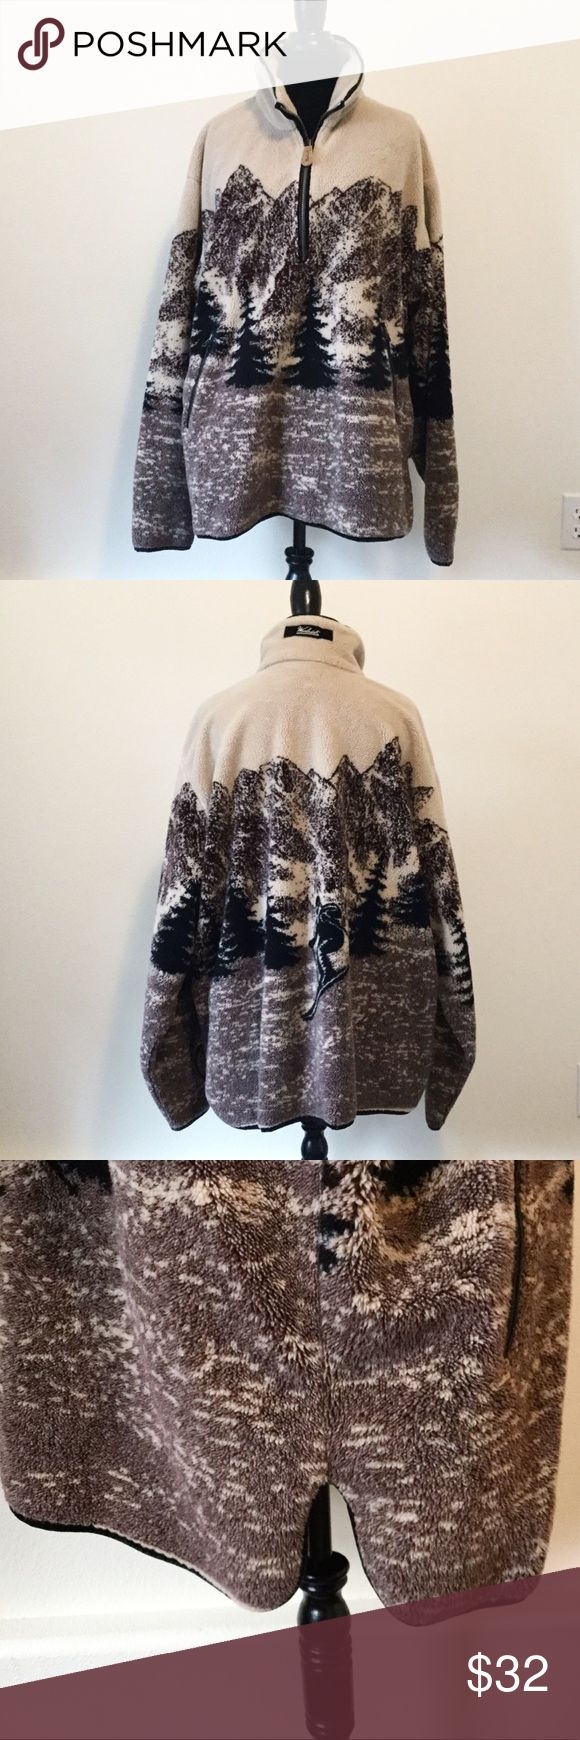 """Woolrich Men's Ski Print Winter Pullover In good condition. No rips, stains or tears. Smoke free home. Measures 27"""" across from armpit to armpit and is 28"""" in length. Has side slits for ease in walking. Zippered pockets in front. Trees in front and ski man in back. Woolrich Sweaters Zip Up"""